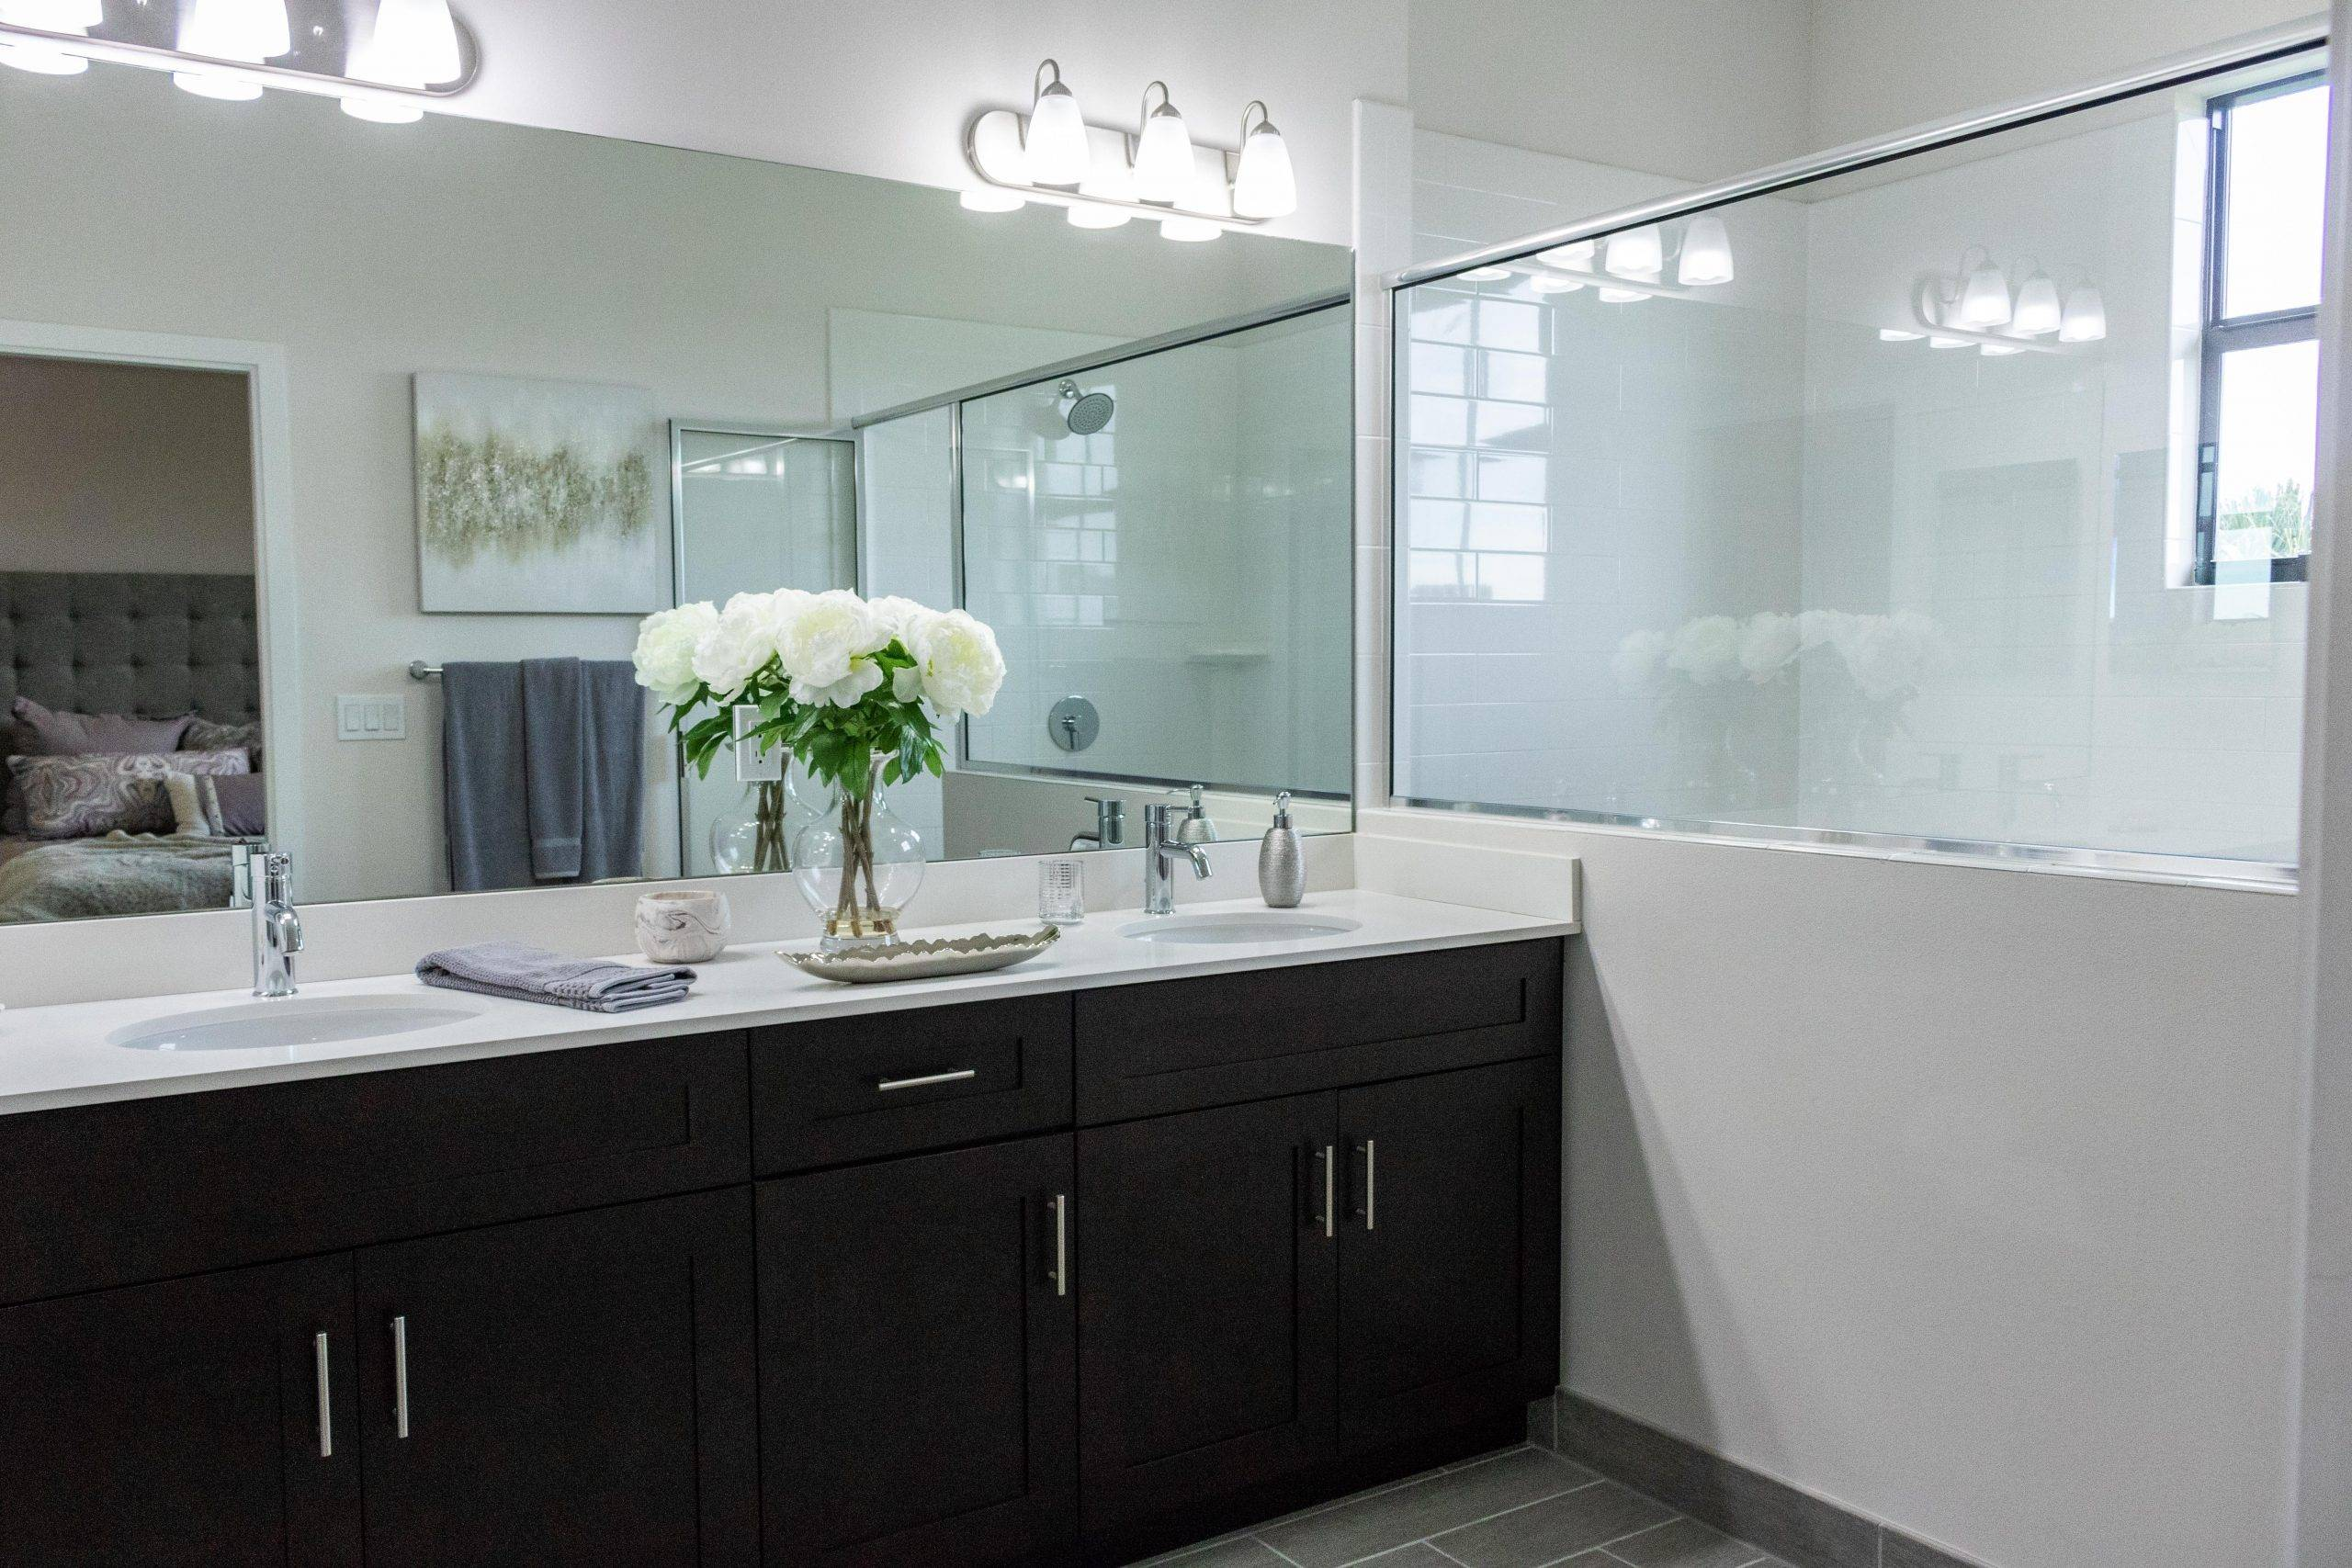 cleaning the bathroom counters